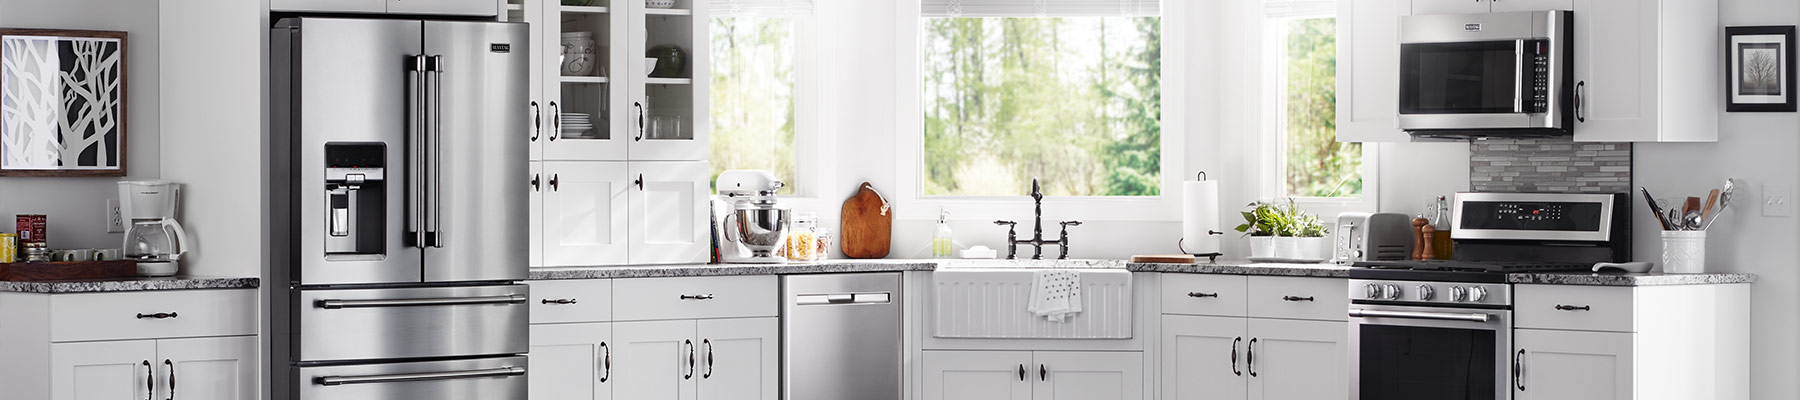 Myers Appliance - Services - Home Appliances, Kitchen Appliances and ...